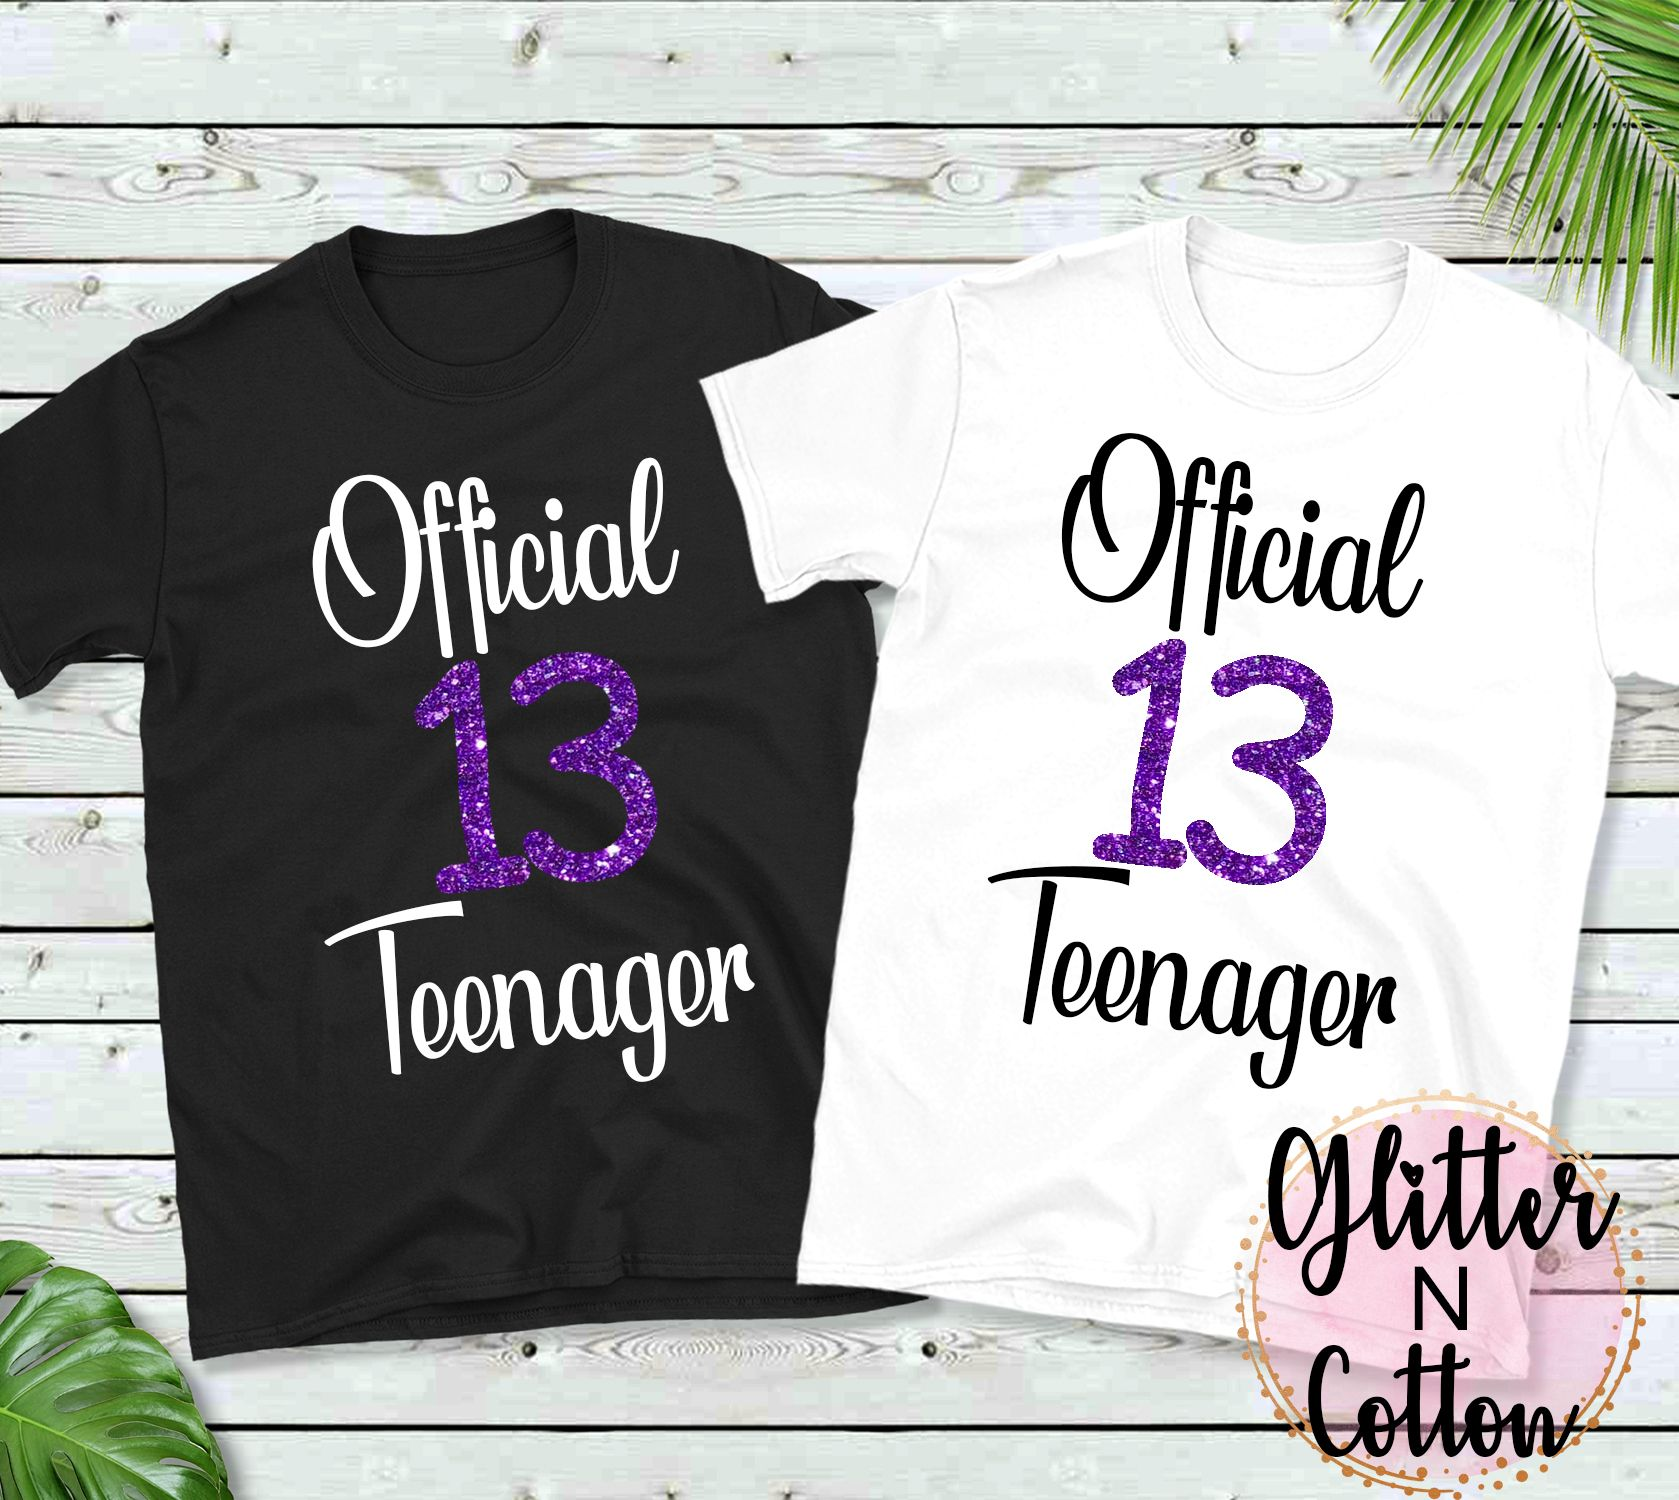 Official Teenager Shirt 13 Year Old Custom Shirt Custom Etsy Custom Printed Shirts Custom Shirts Shirts For Girls